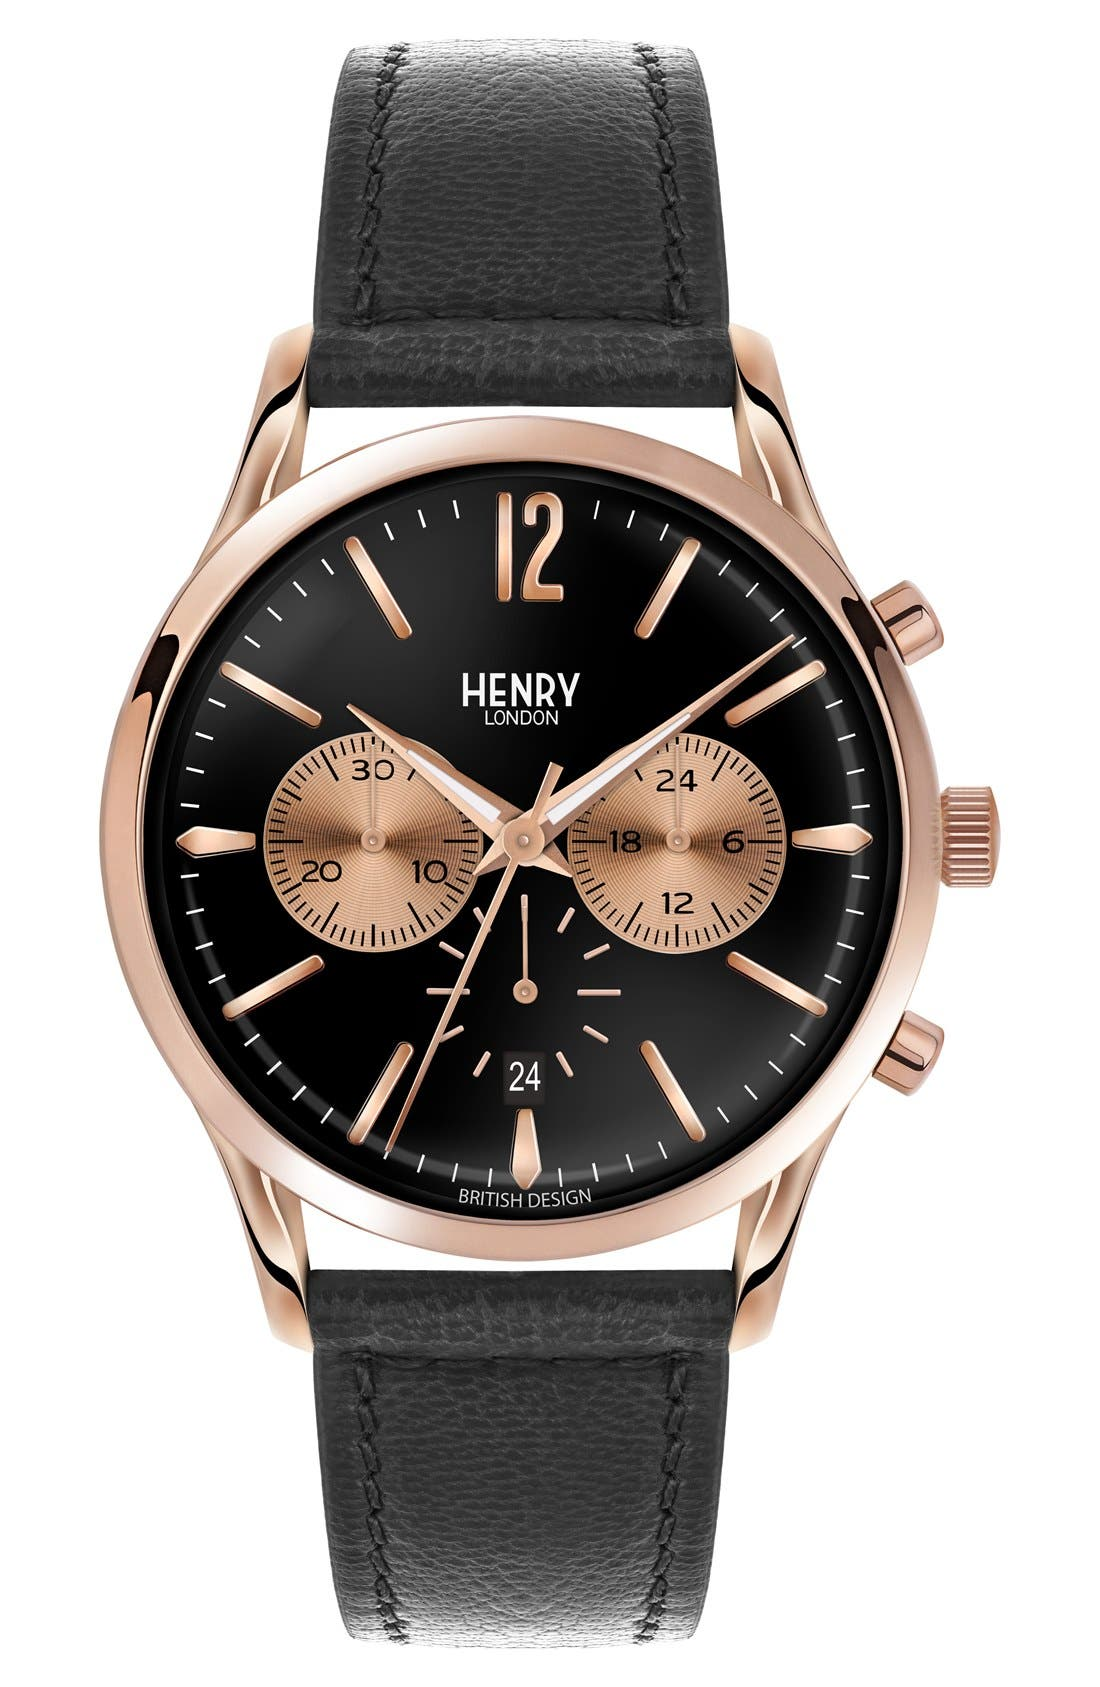 Henry London 'Richmond' Chronograph Leather Strap Watch, 41mm